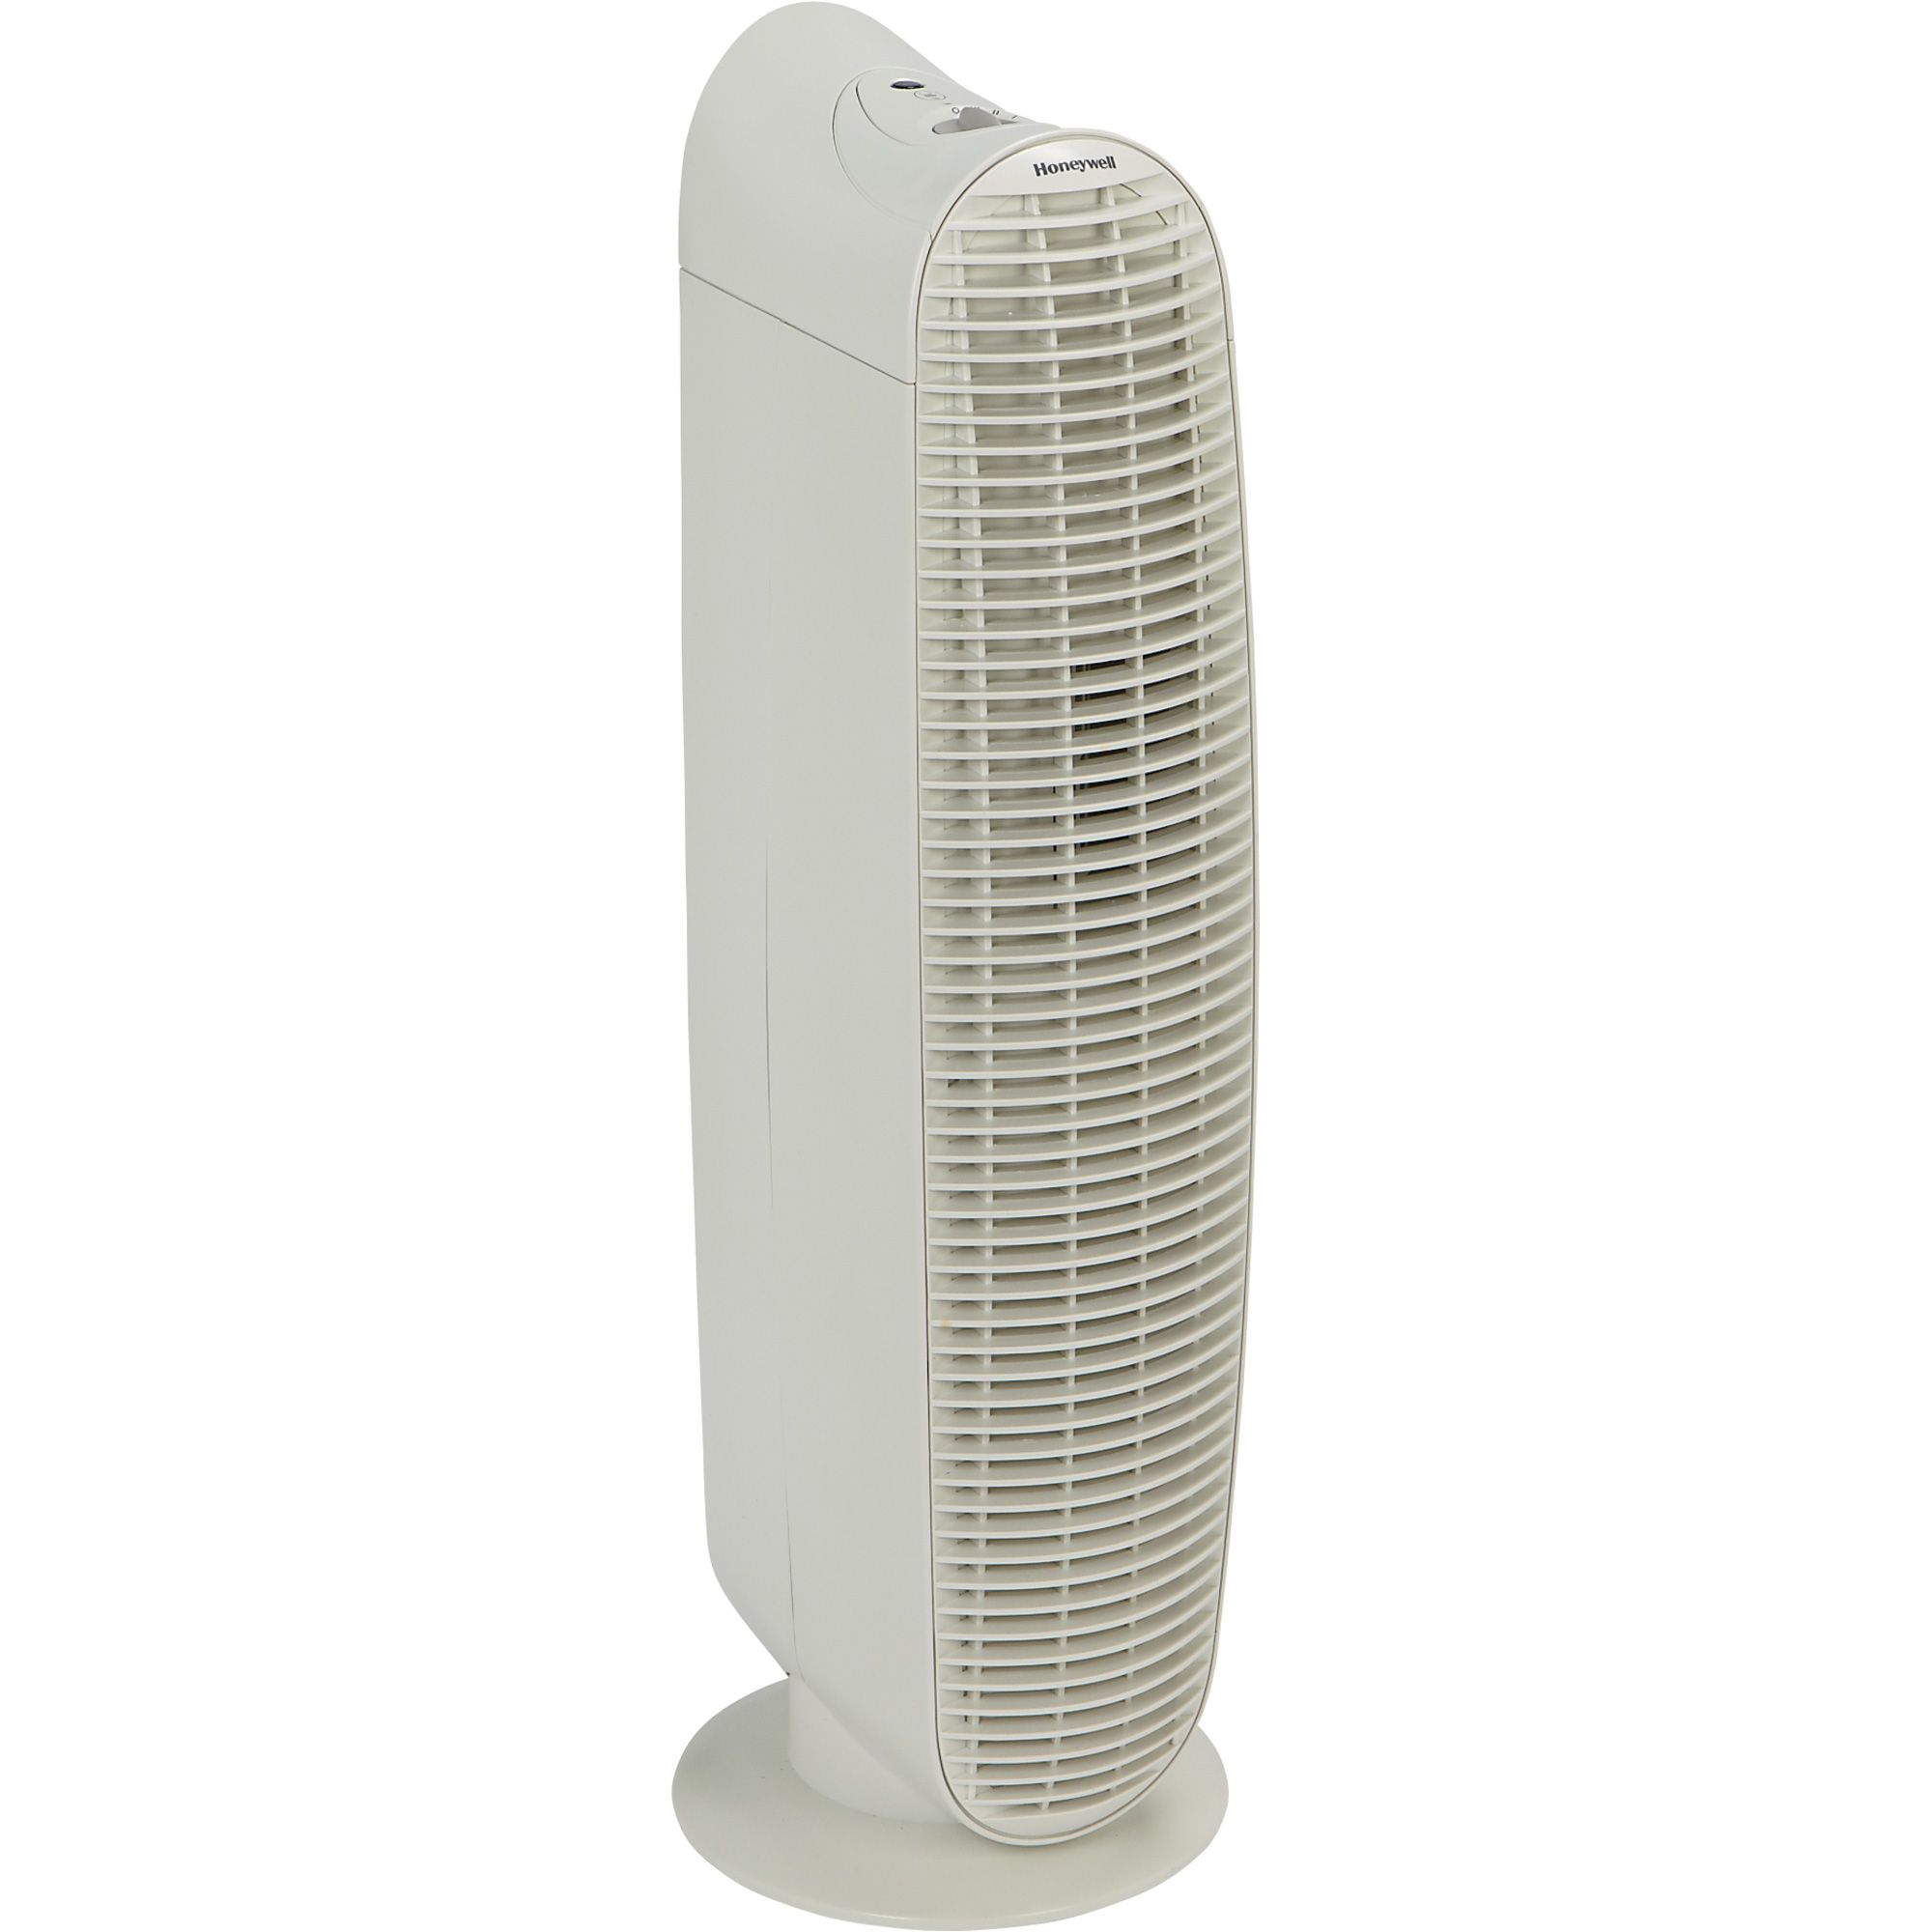 Honeywell Pet Clean Air Purifier Model Hht082tgt Air Purifiers Northern Tool Equipment With Images Clean Air Purifier Air Purifier Purifier